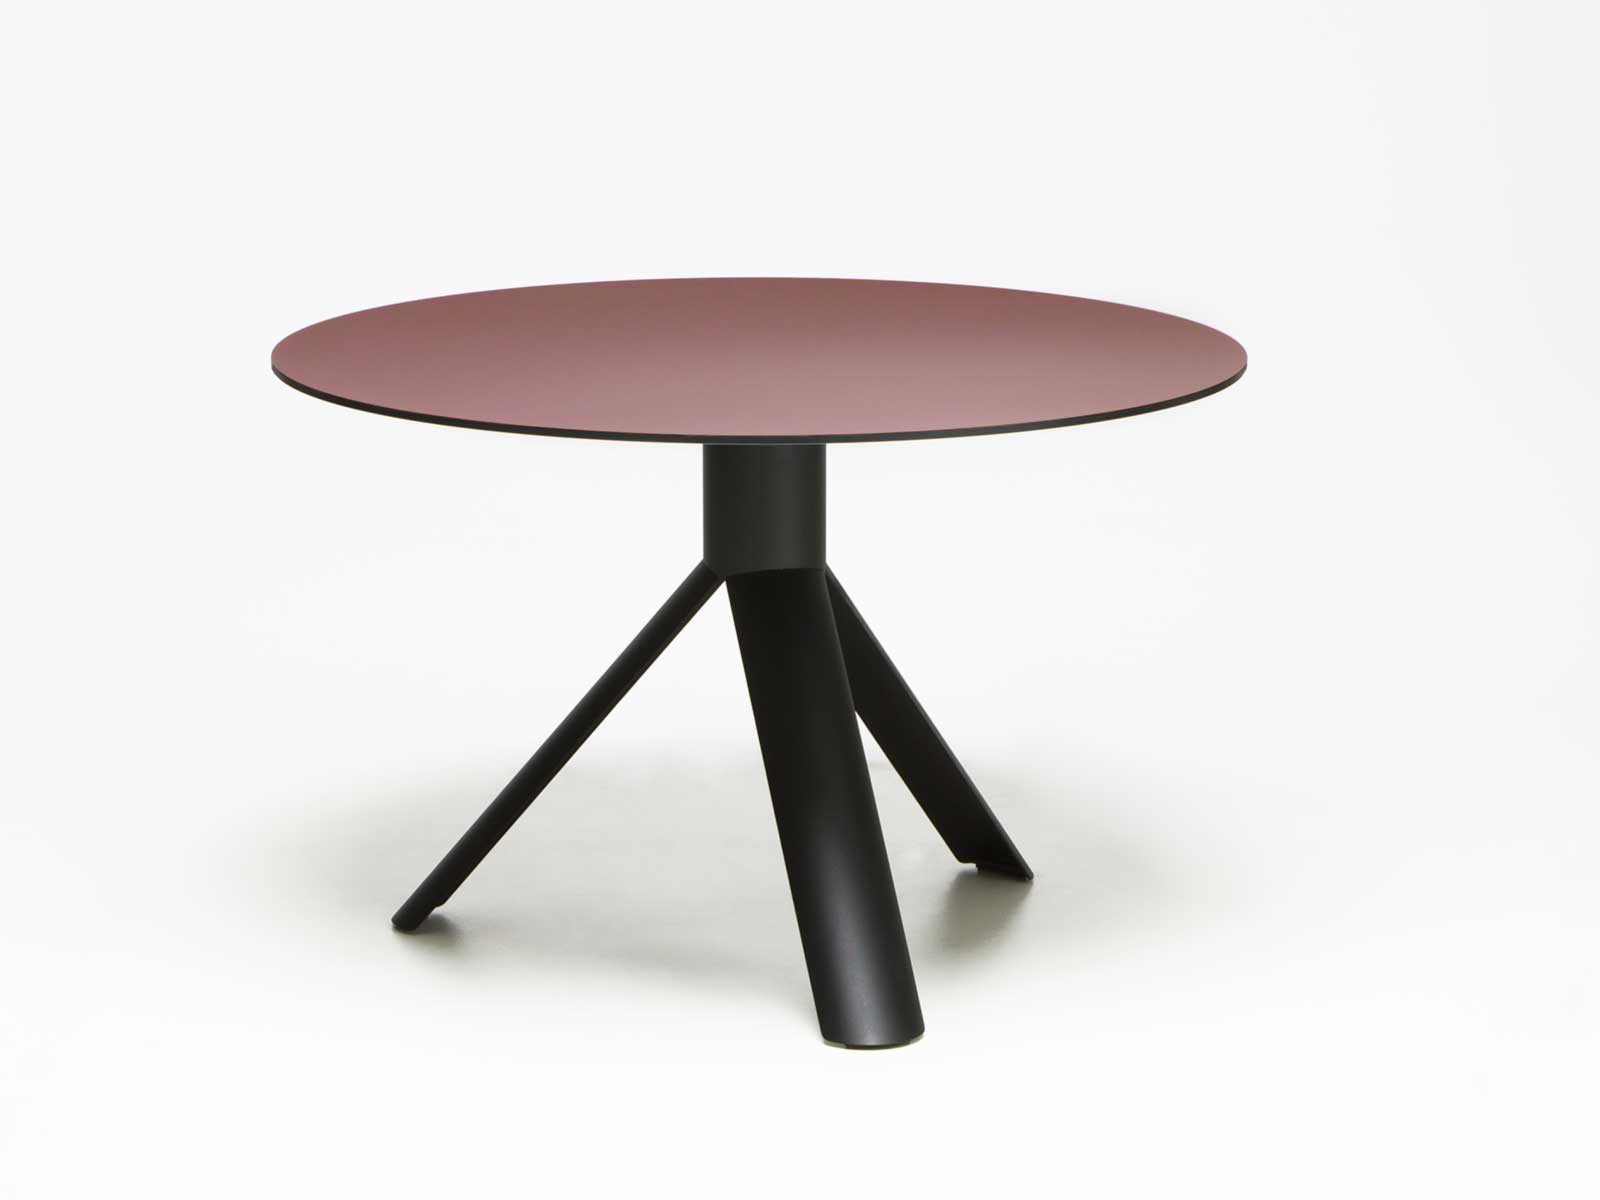 Round tube table 120 cm ntm 0751 rosso jaipur for 120 table